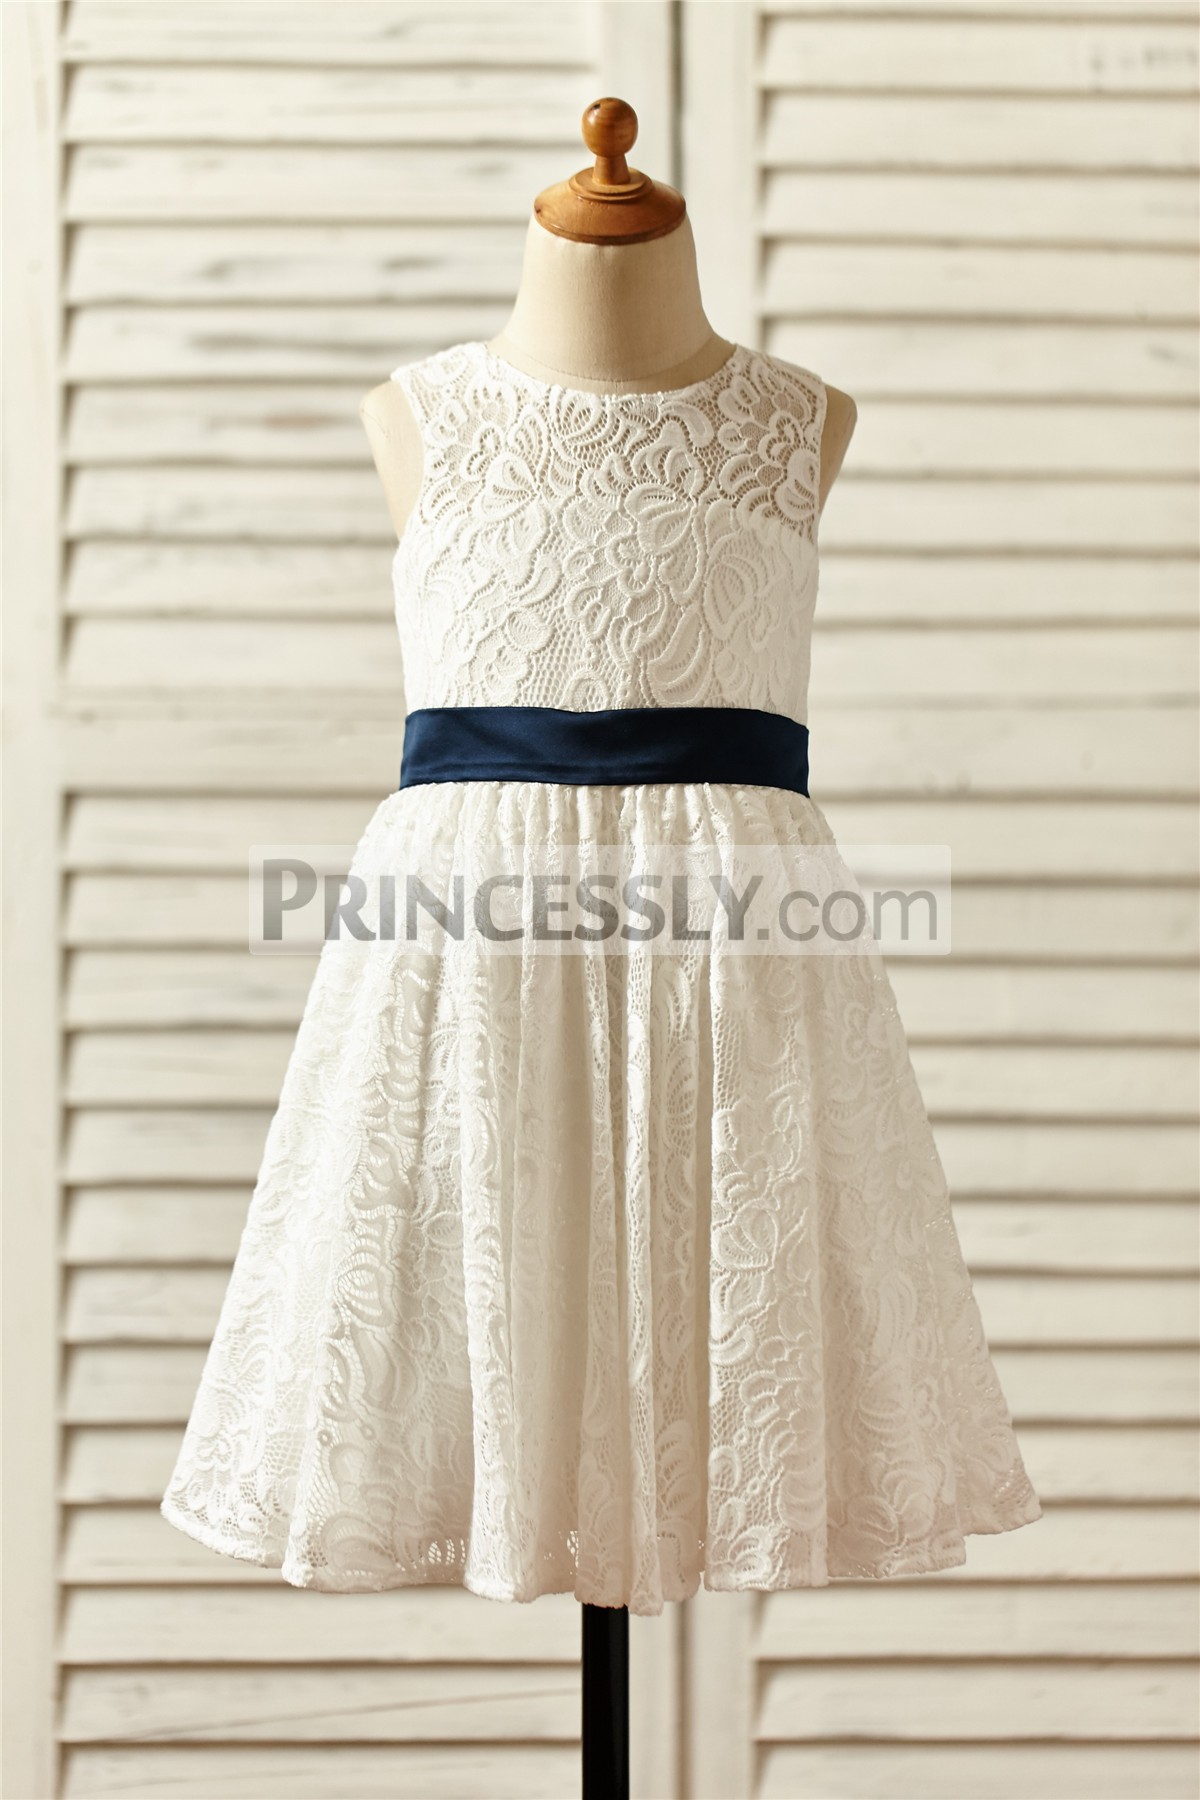 Ivory floral lace flower girl dress with navy blue belt